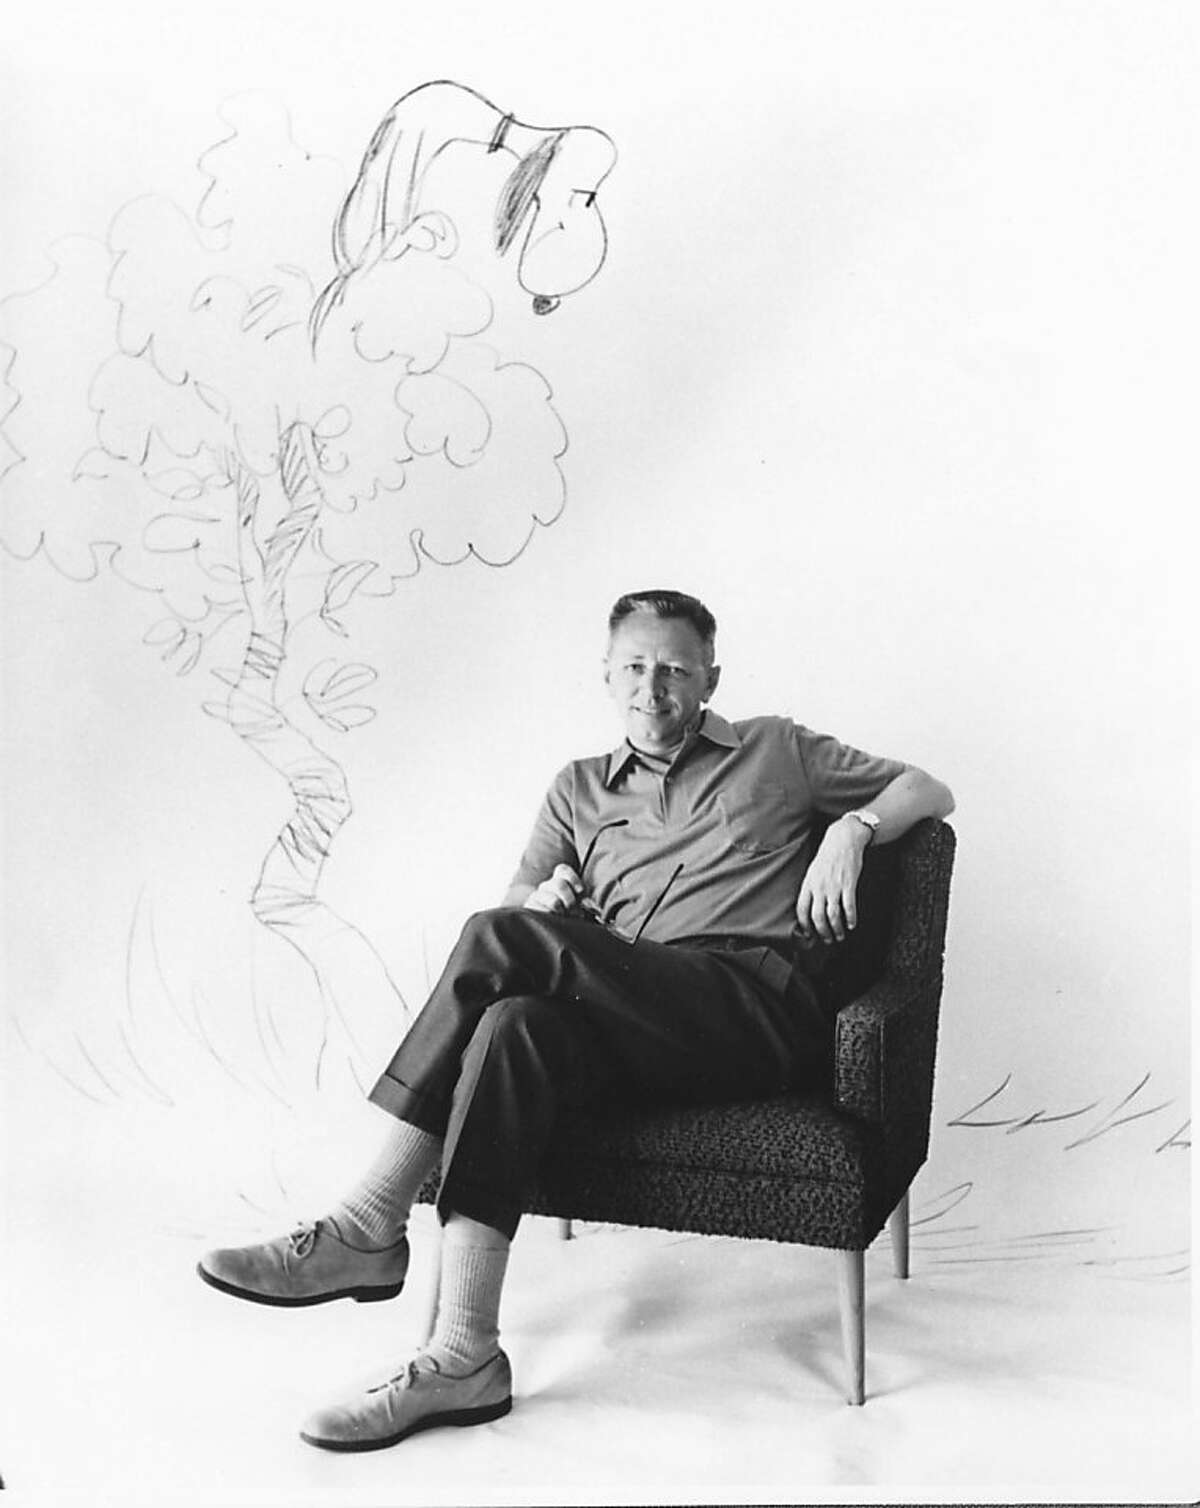 Charles Schulz sitting in a mid-century modern chair and Snoopy in the background as a vulture